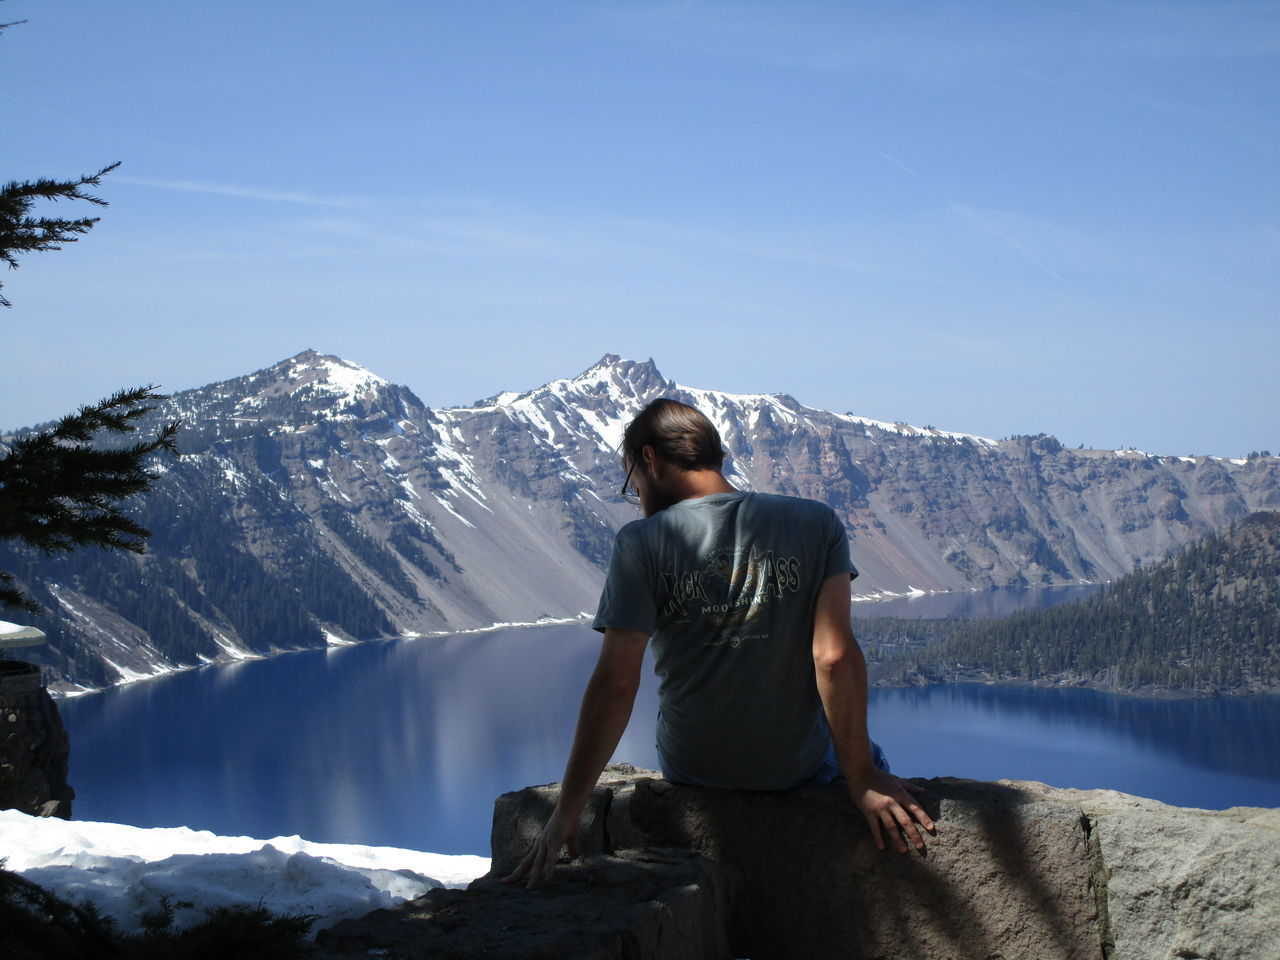 Beauty In Nature Casual Clothing Crater Lake National Park Day Mountain Mountain Range Nature Outdoors Sky Sunny Tranquility